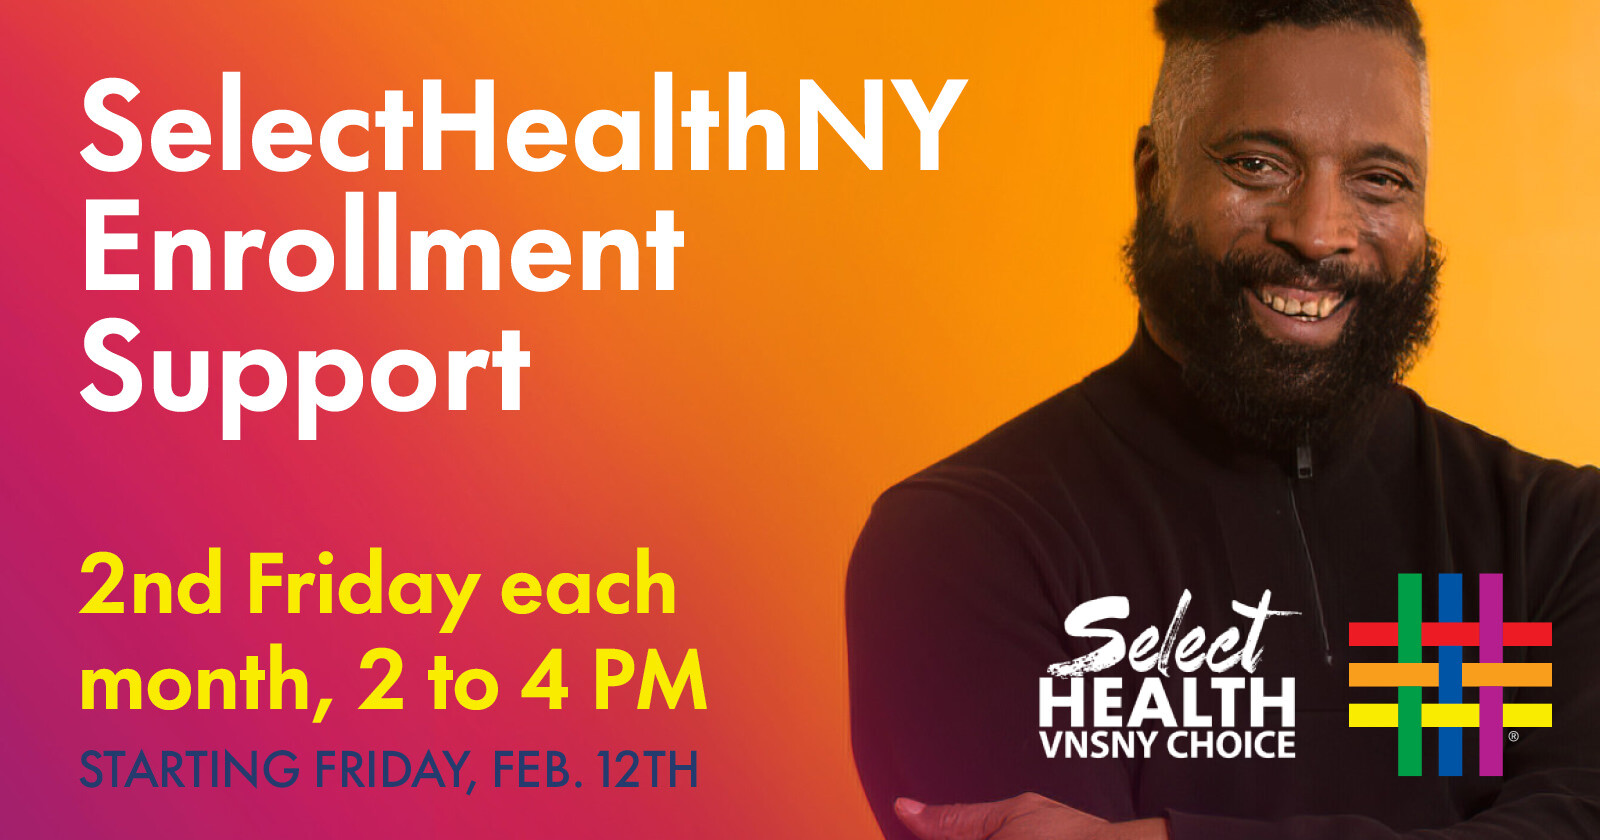 SelectHealthNY Enrollment Support at Brooklyn Community Pride Center